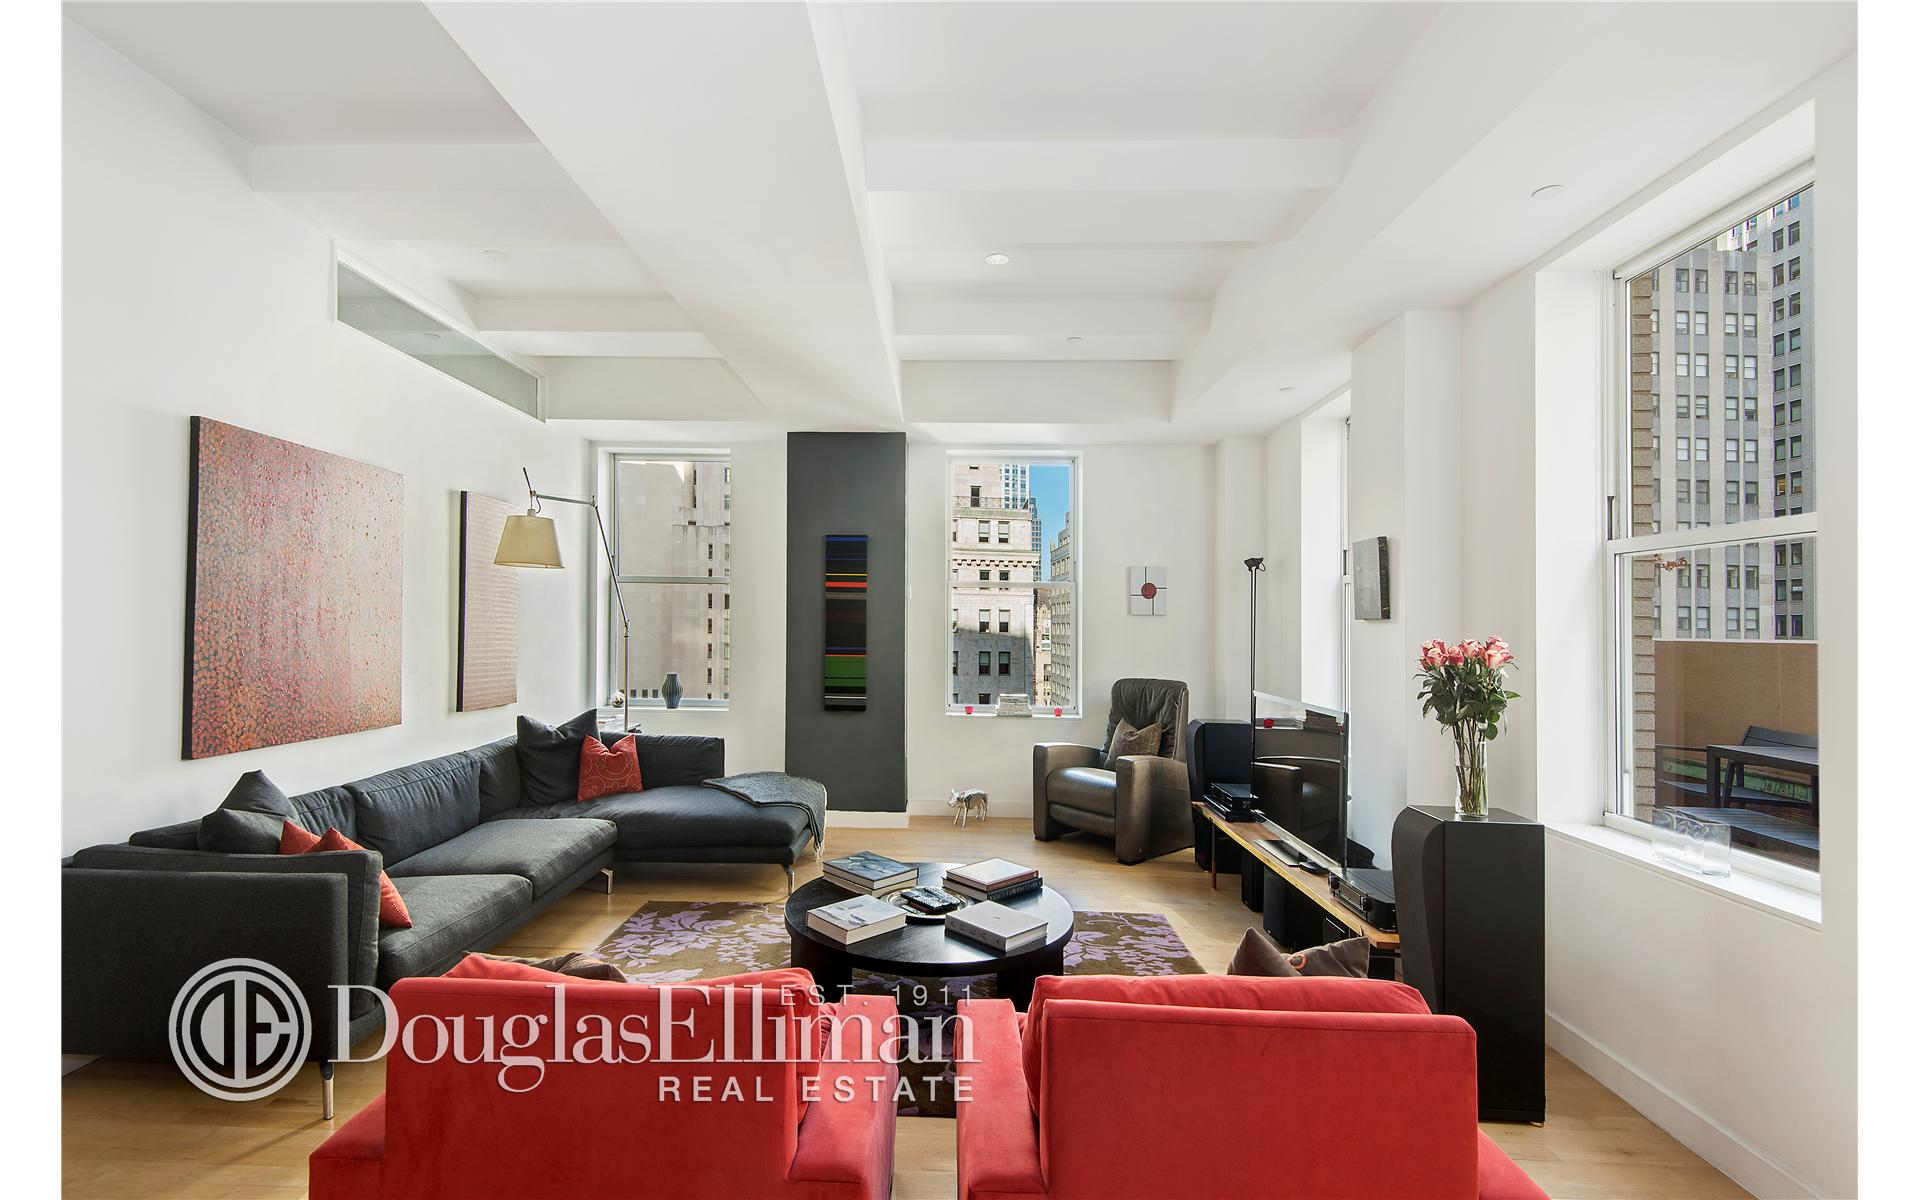 Condominium for Sale at DOWNTOWN BY STARCK, Downtown By Starck, 15 Broad Street New York, New York 10005 United States